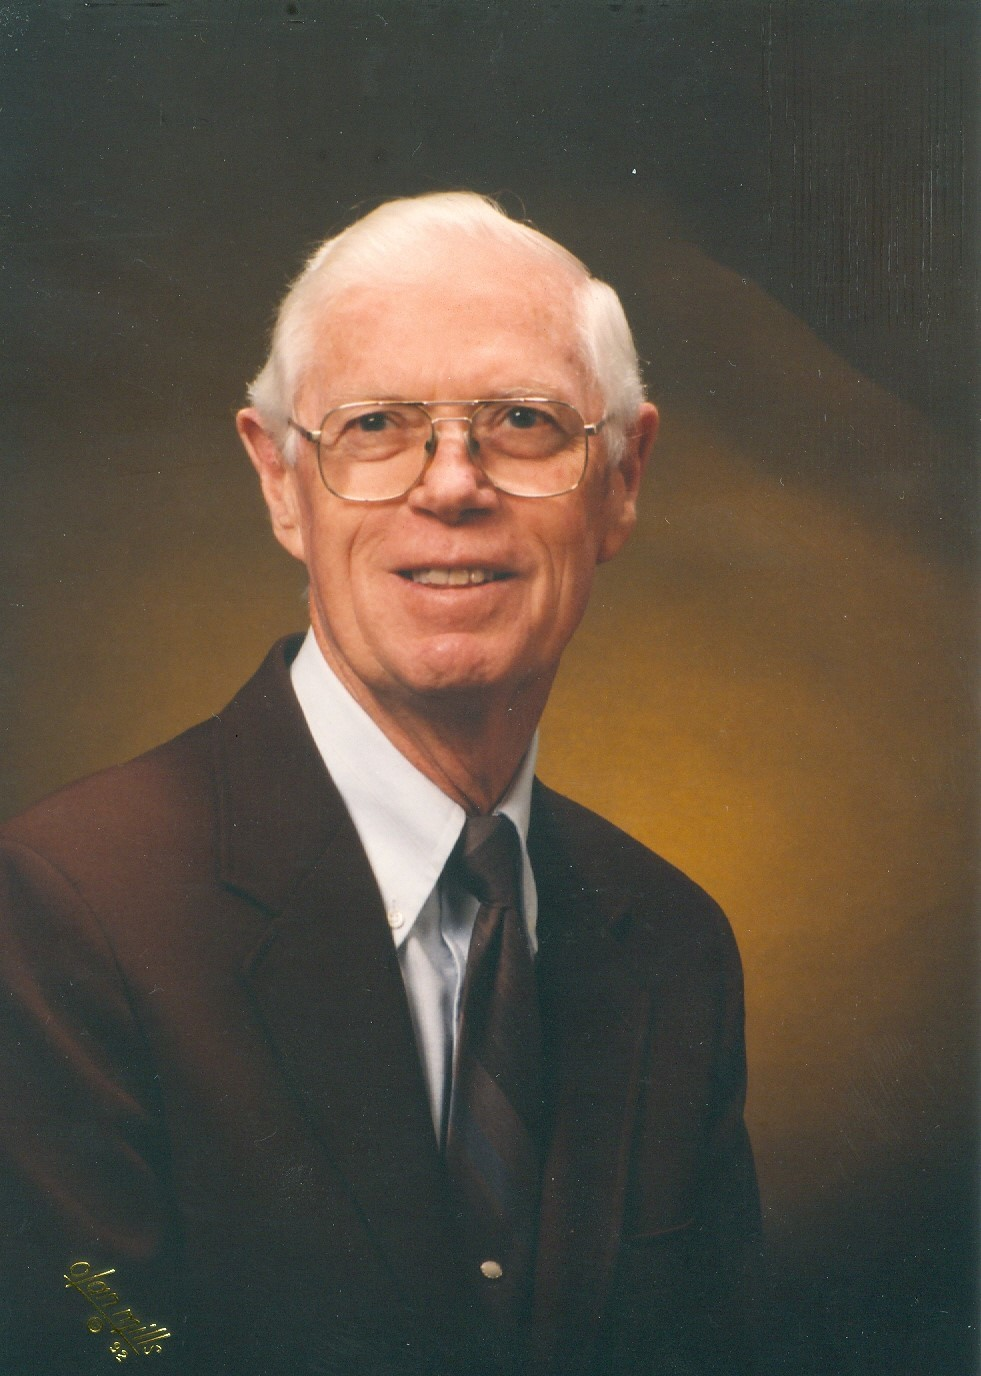 Frank Rogers Atchley